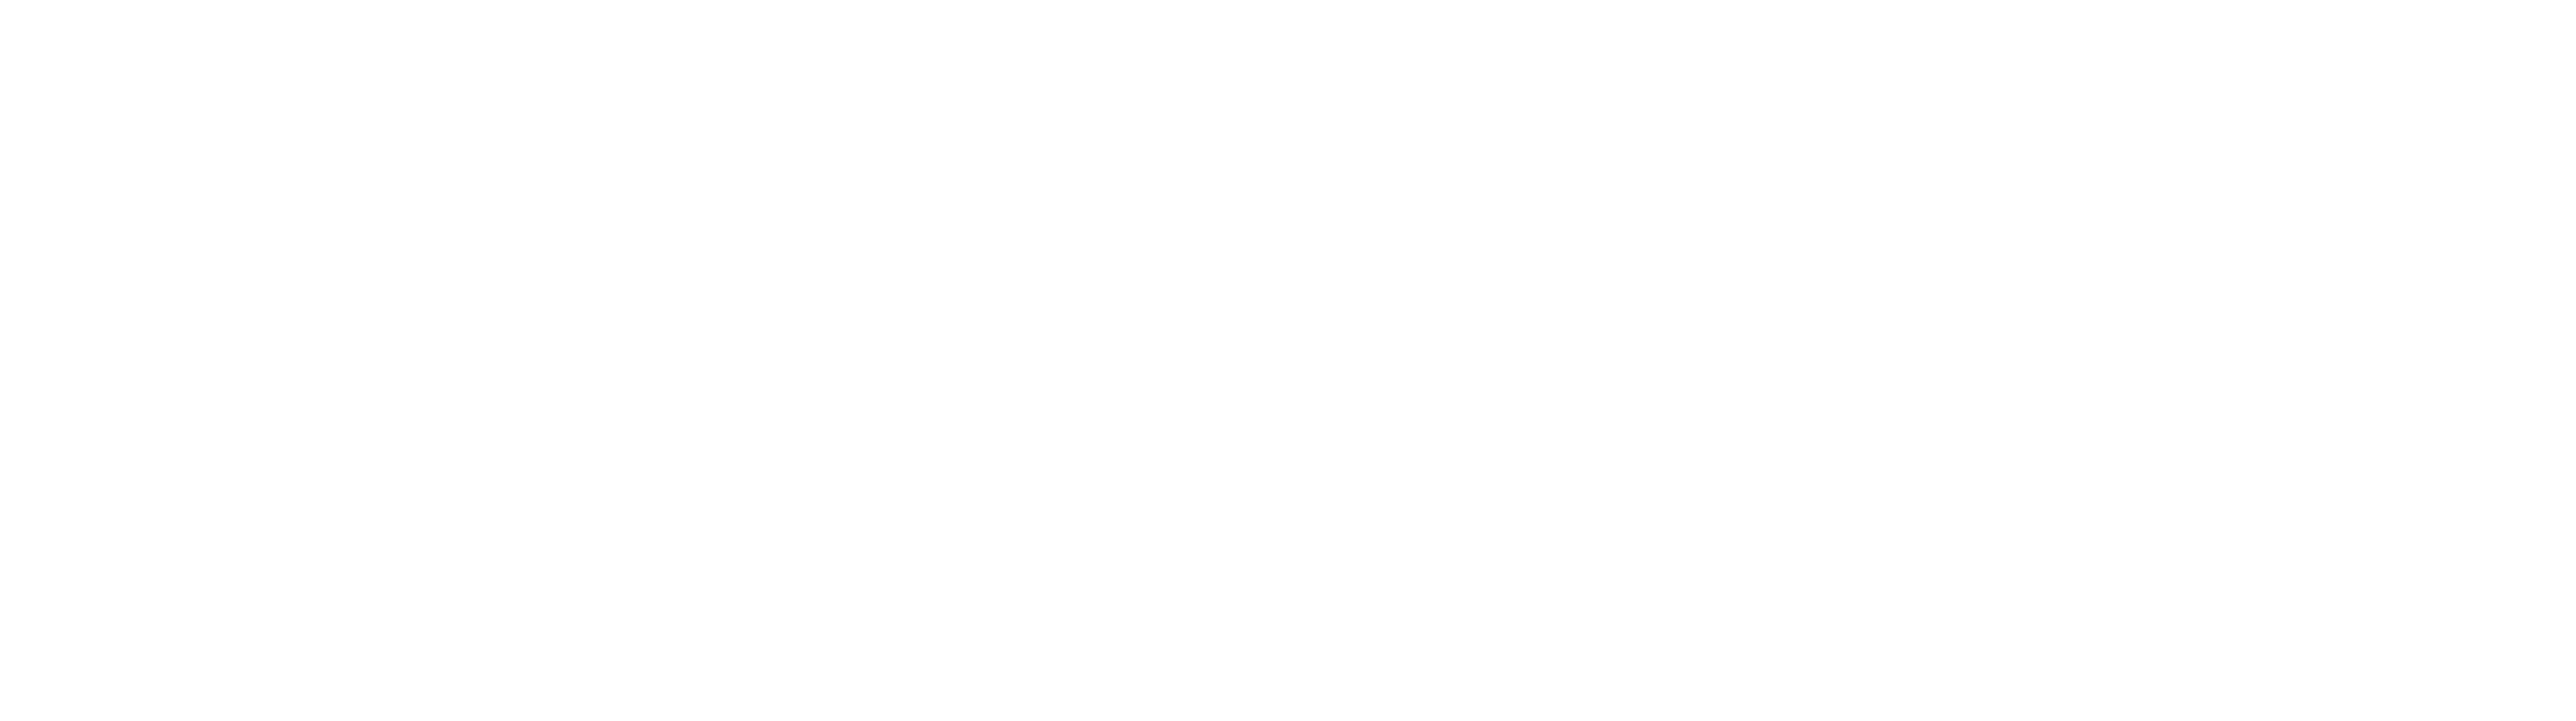 Sonia's Florist - Flower Delivery in Mineola, NY